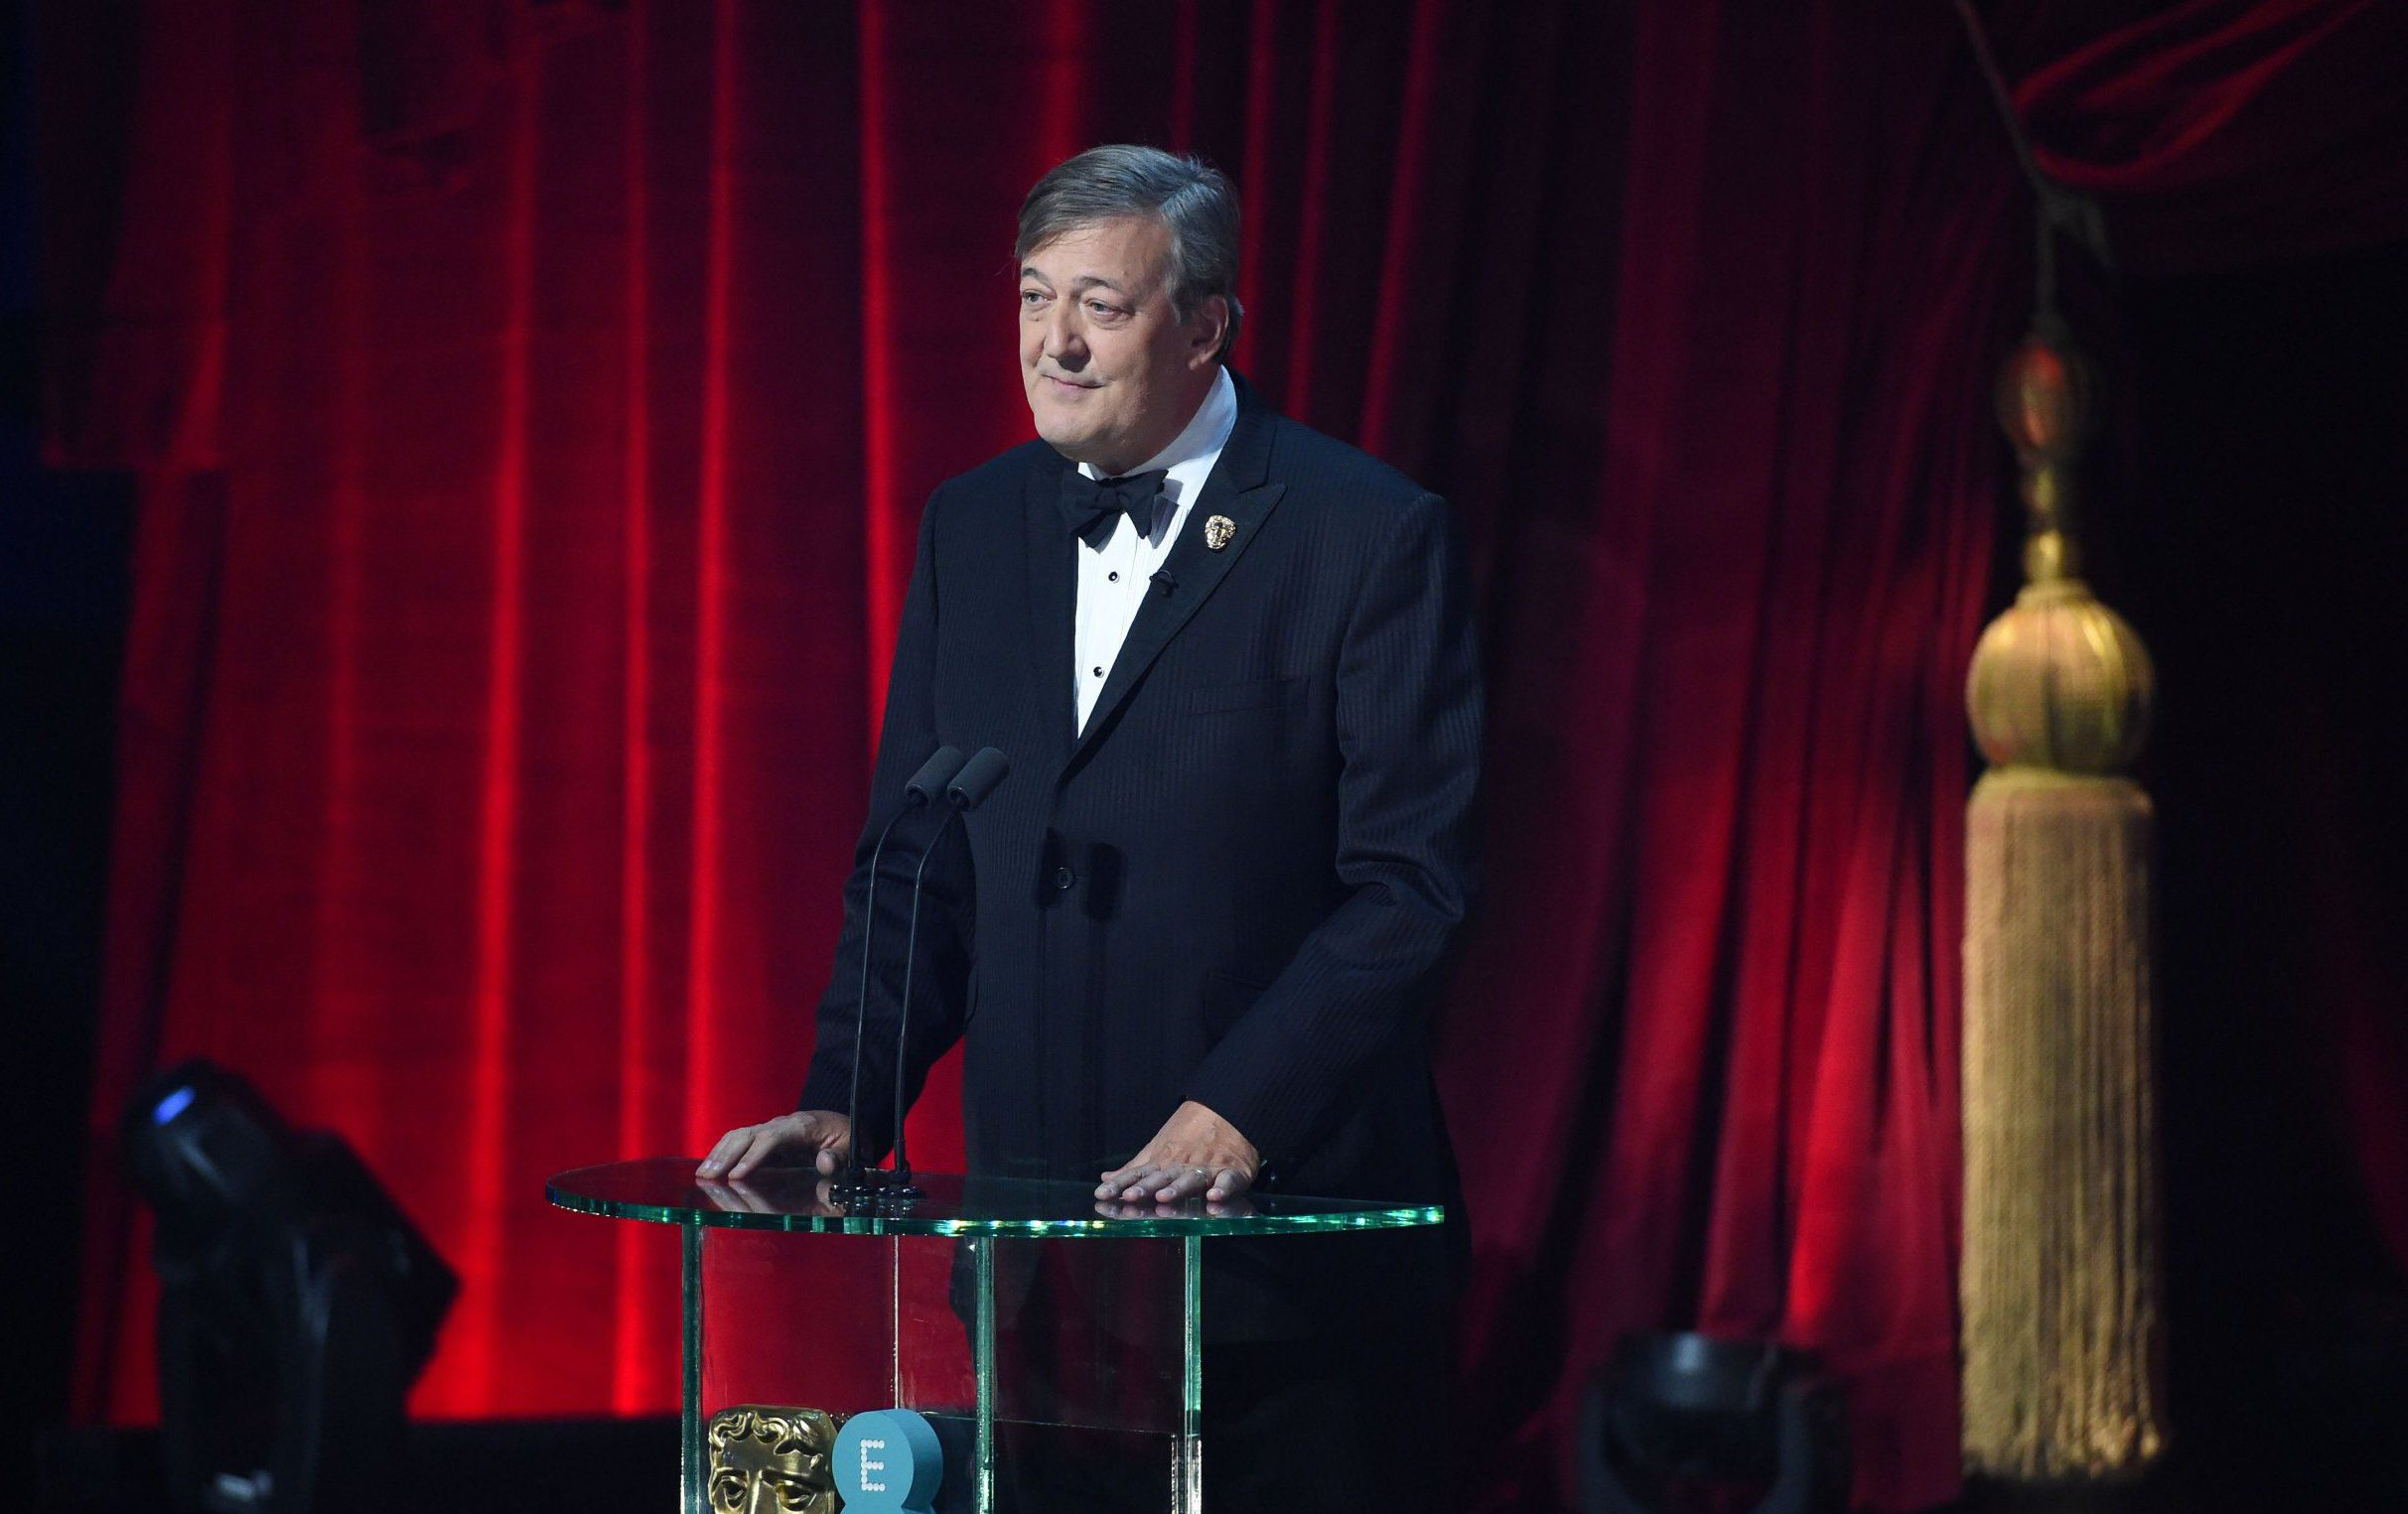 EMBARGOED UNTIL 21.30 SUNDAY 12TH FEB Mandatory Credit: Photo by Jonathan Hordle/REX/Shutterstock (8343355o) Stephen Fry EE BAFTA British Academy Film Awards, Show, Royal Albert Hall, London, UK - 12 Feb 2017